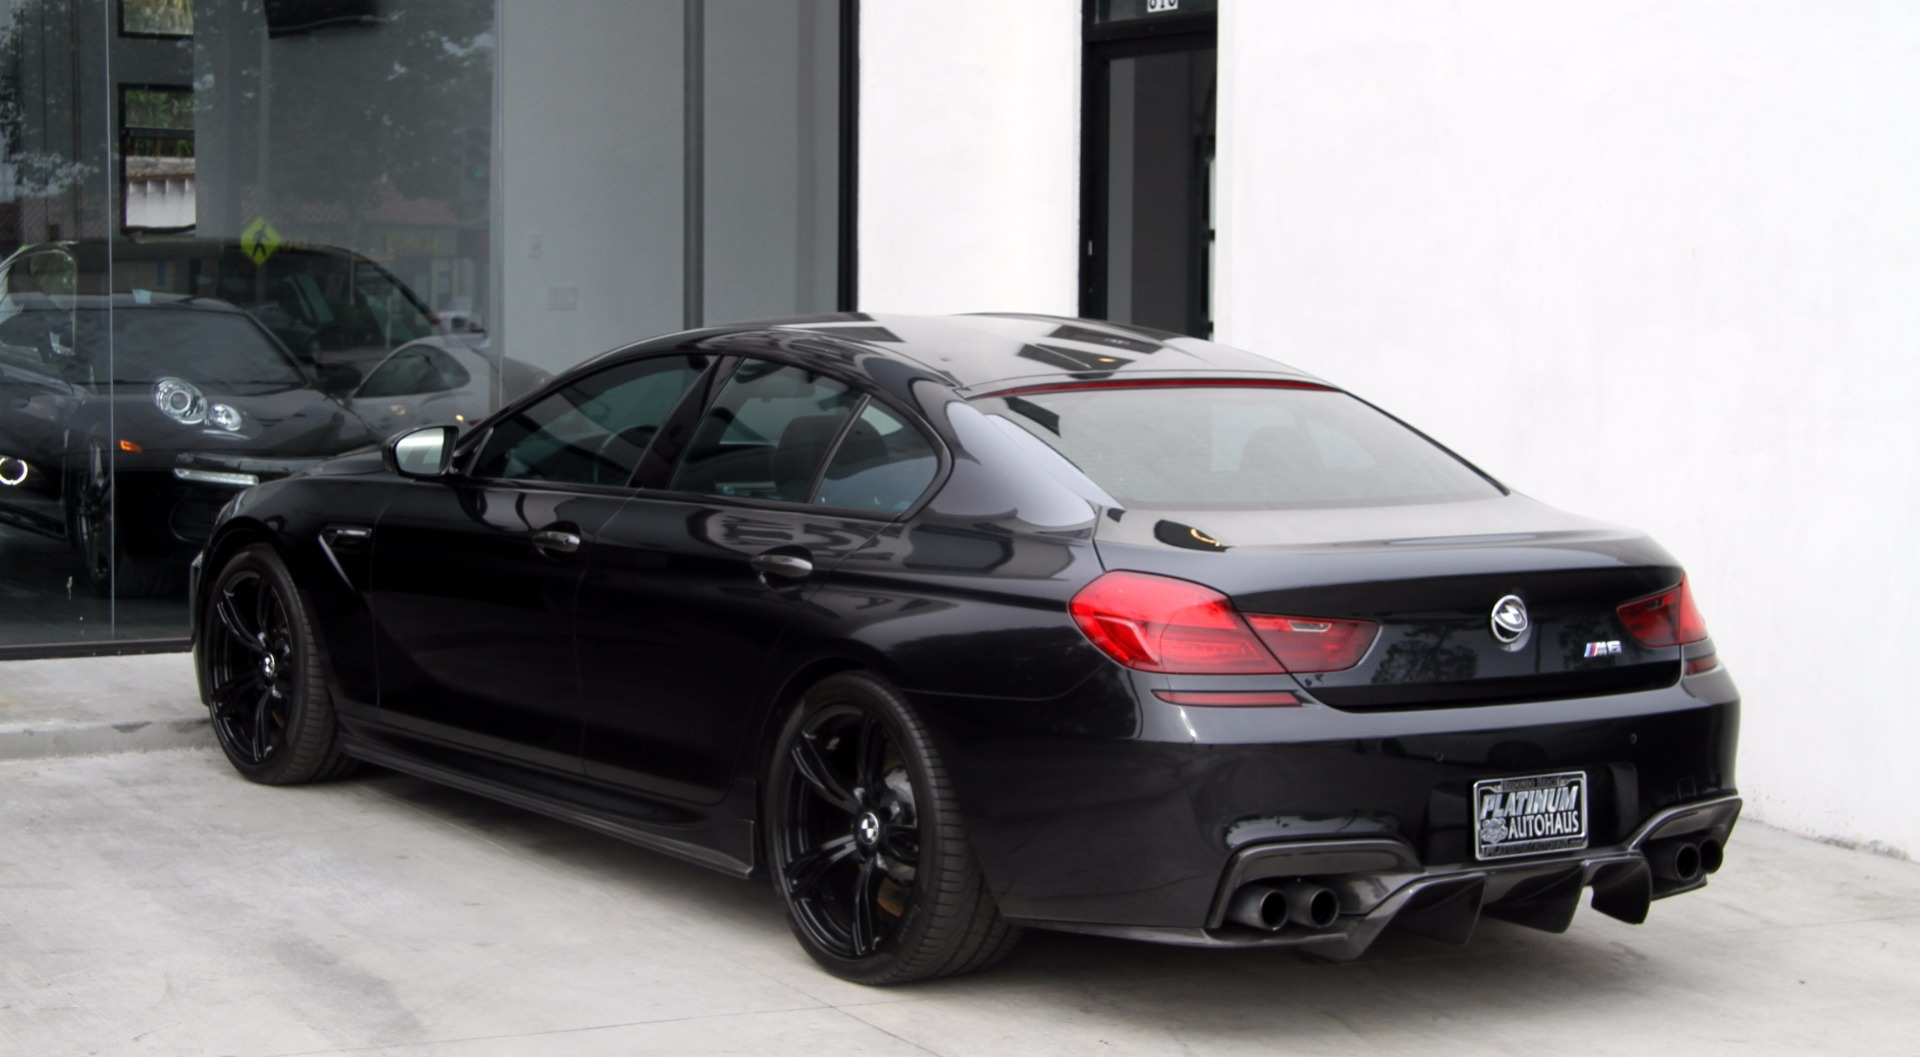 2014 Bmw M6 Gran Coupe Stock 5581 For Sale Near Redondo